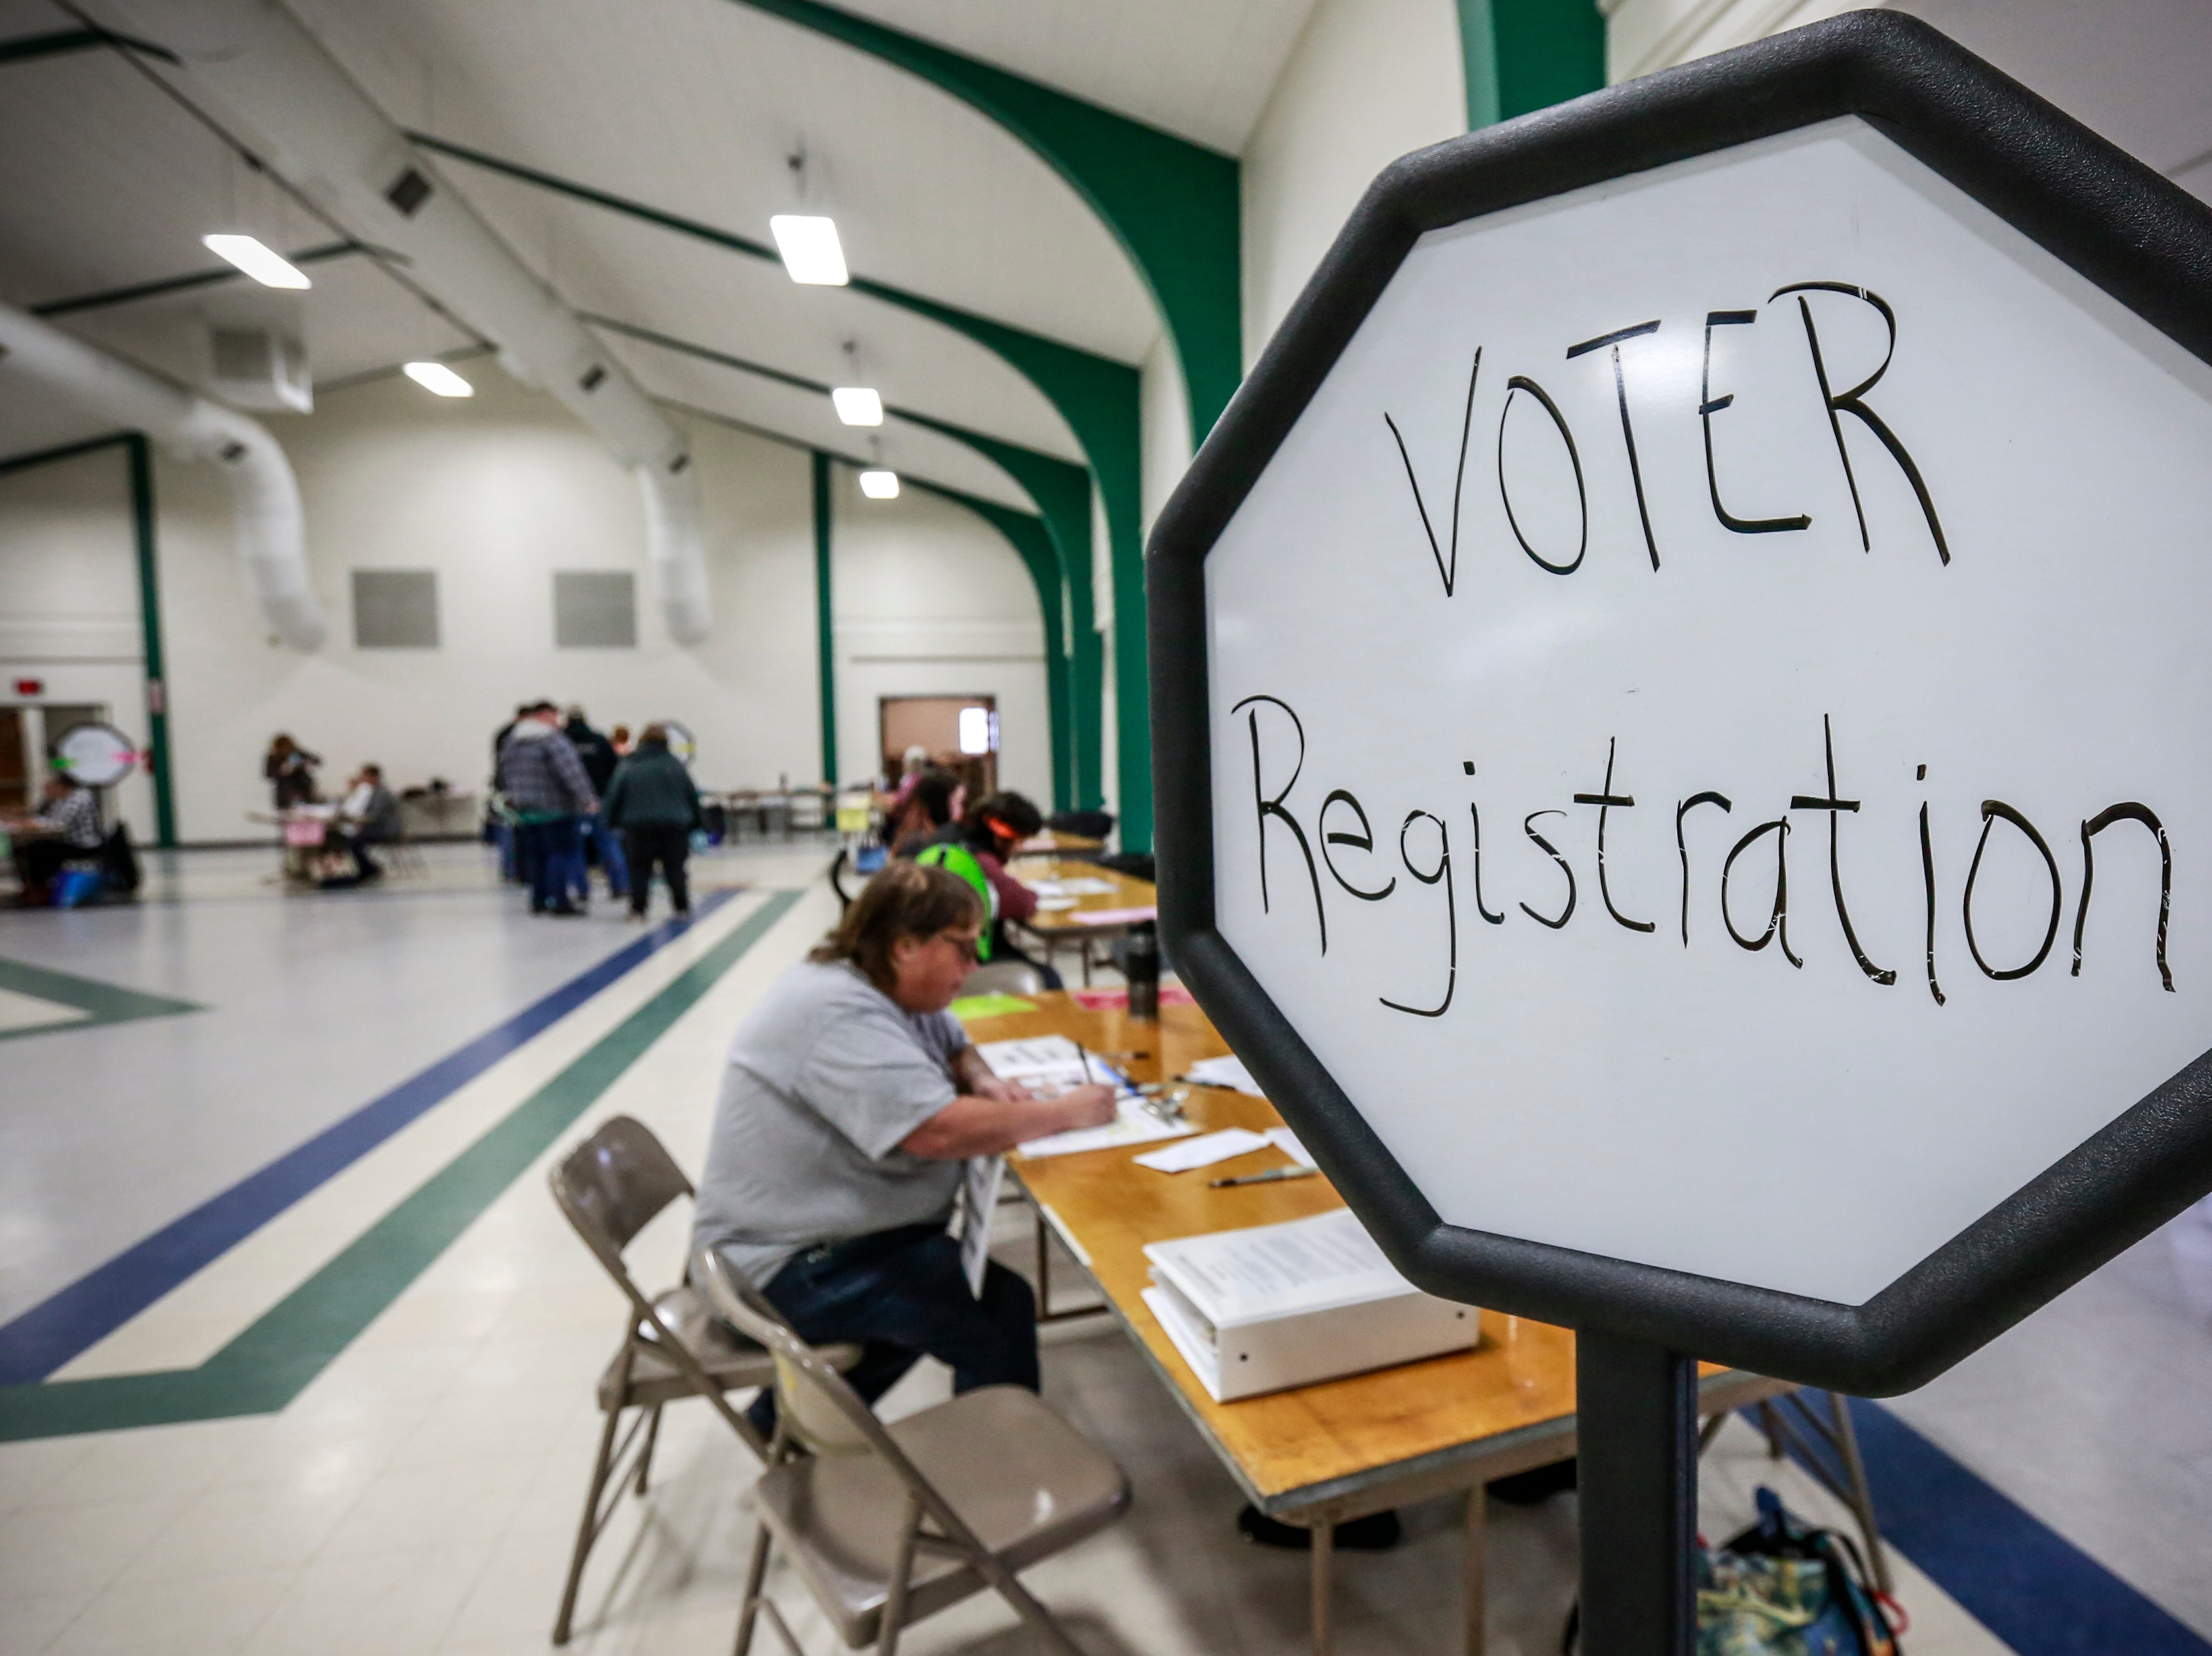 """A """"Voter Registration"""" sign displays at the entrance Tuesday, Nov. 6, 2018, at the Youth Building in Marathon Park in Wausau, Wis. T'xer Zhon Kha/USA TODAY NETWORK-Wisconsin"""